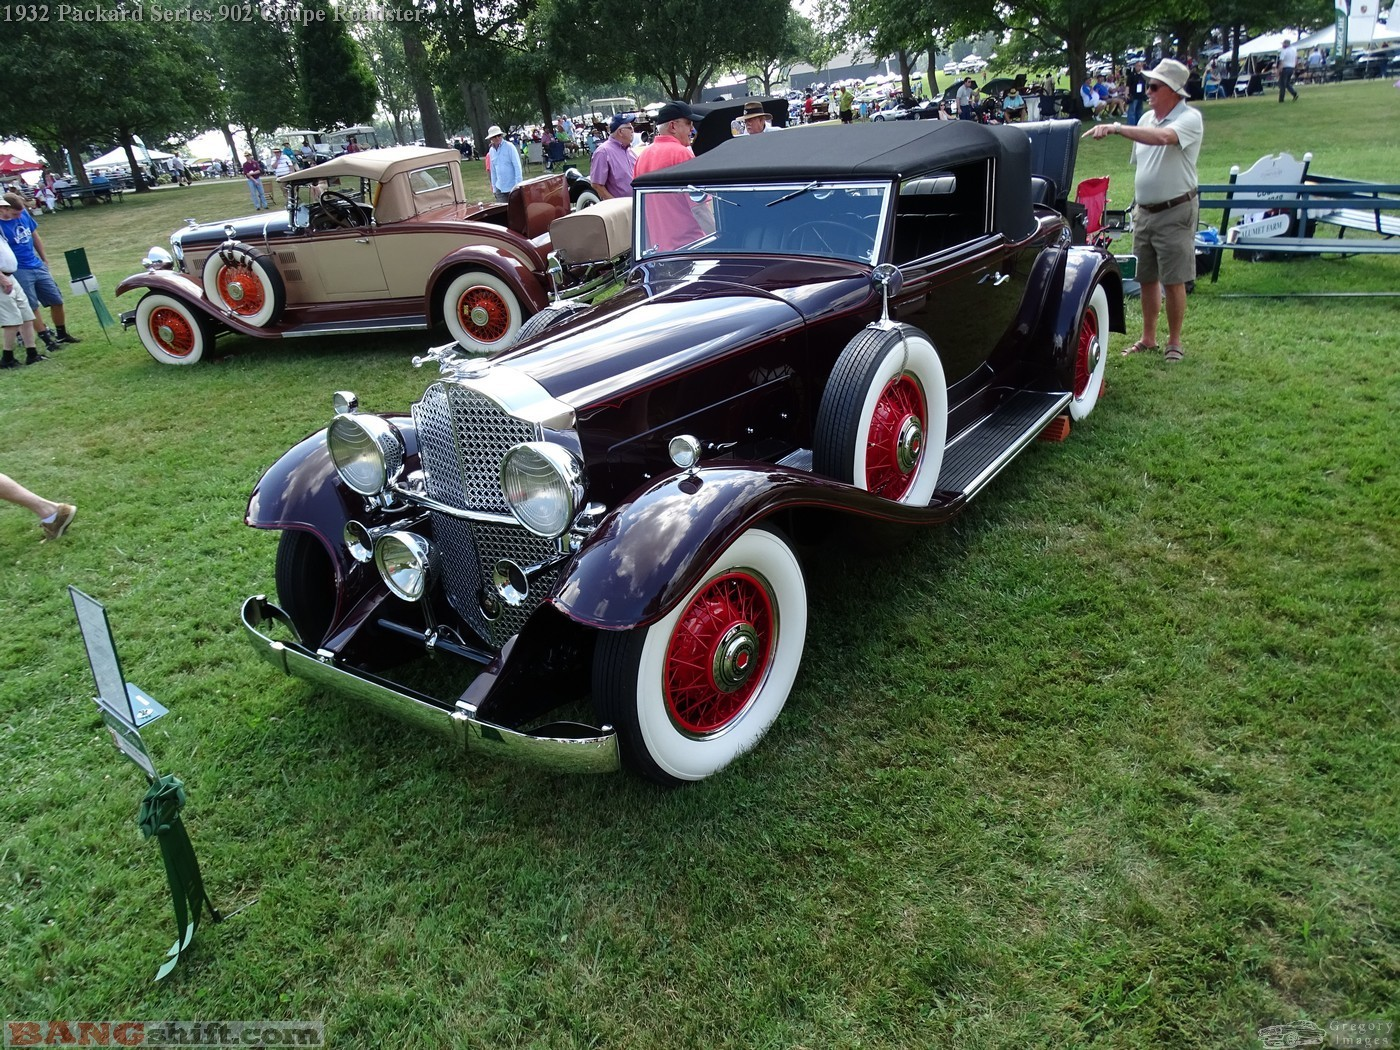 Show Photo Coverage: The 2019 Kneeland Coucours D'elegance – Amazing Event!